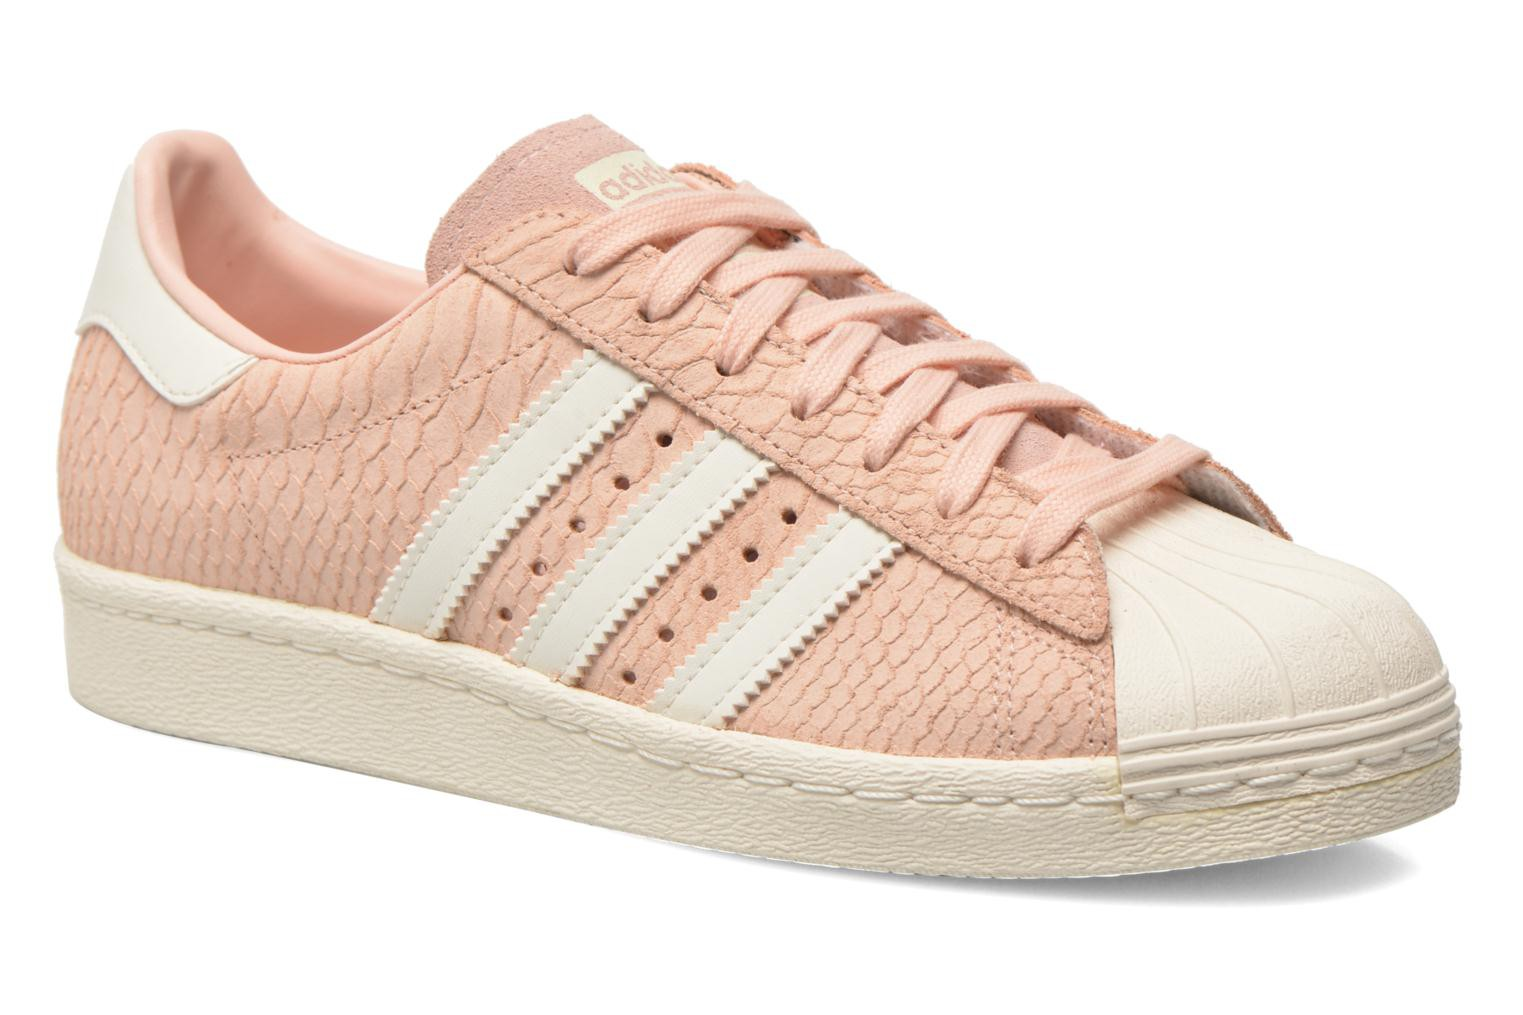 adidas superstar croco rose